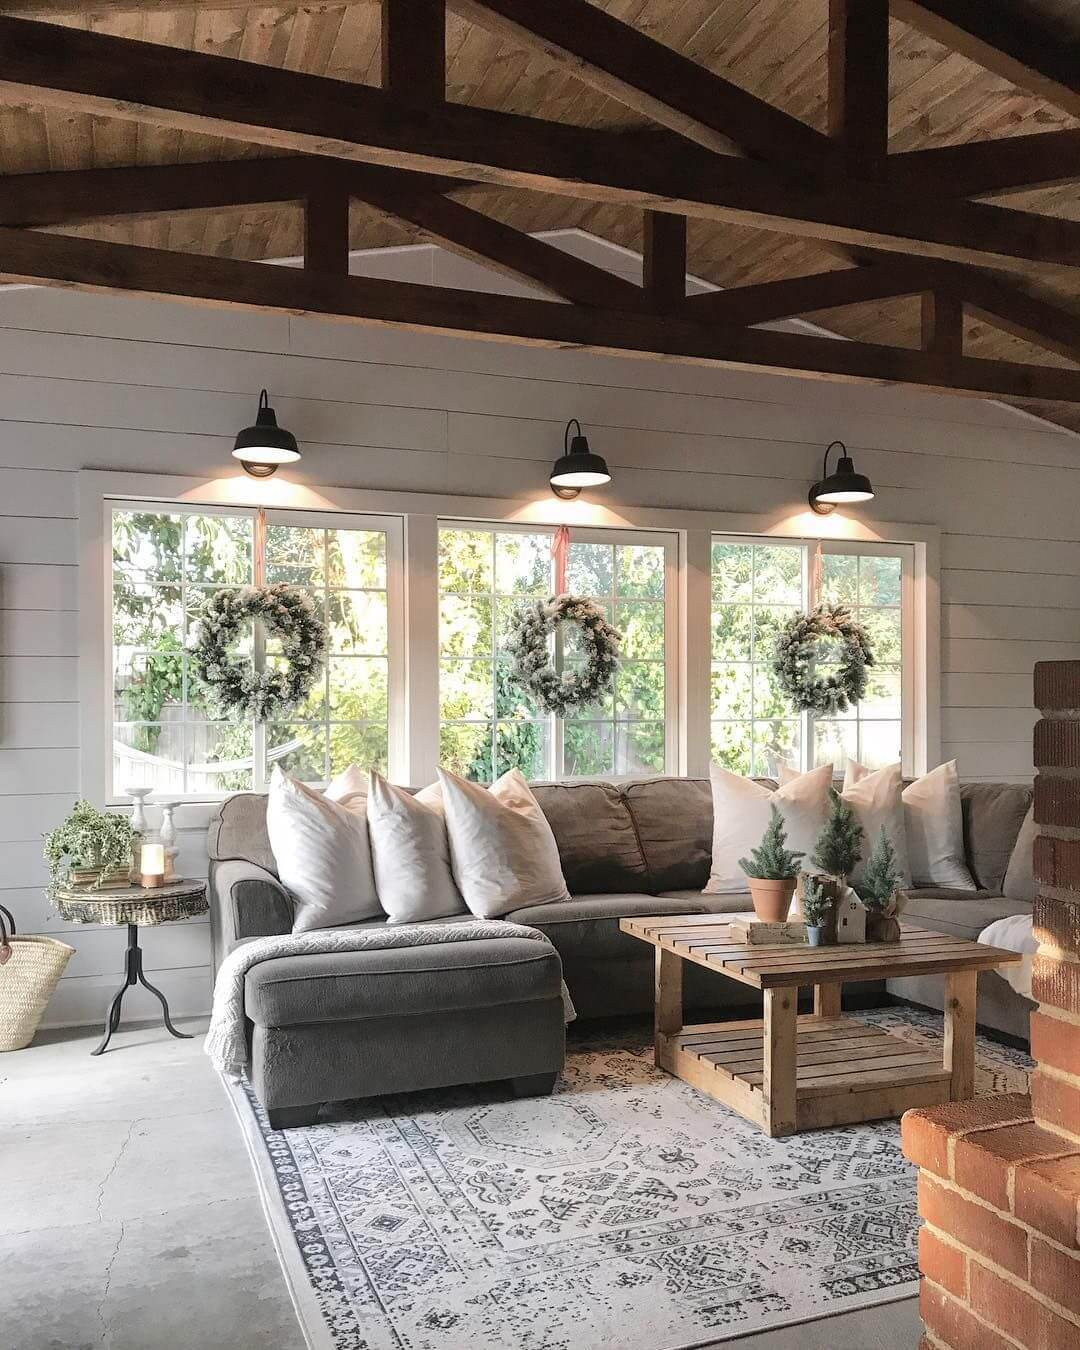 Interior Design Home Decorating Ideas: 35+ Best Farmhouse Interior Ideas And Designs For 2019